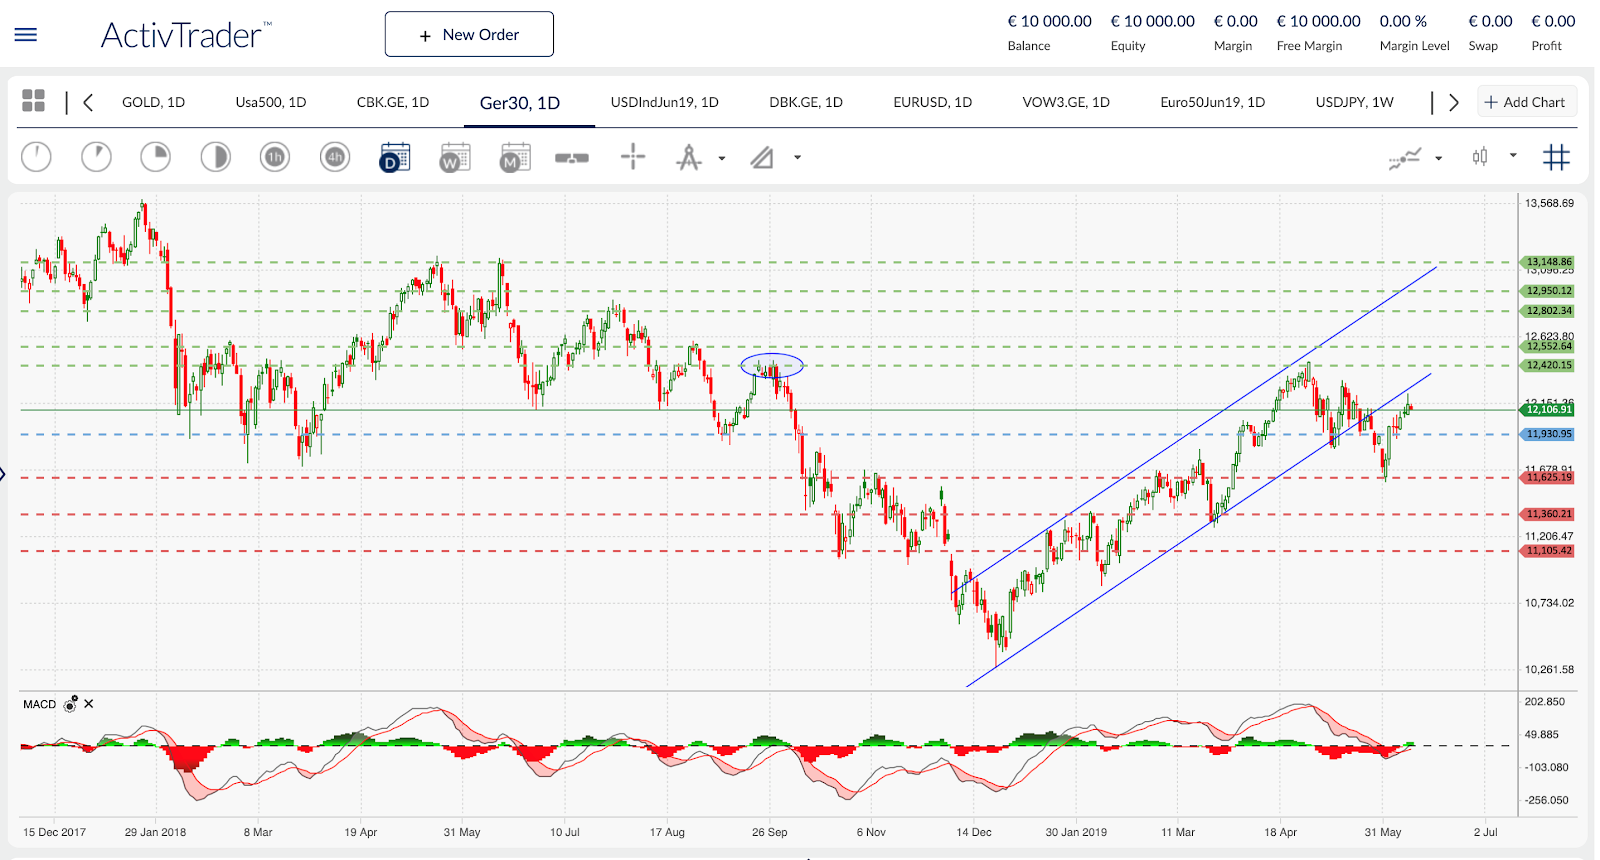 Ger 30 Daily Chart ActivTrader